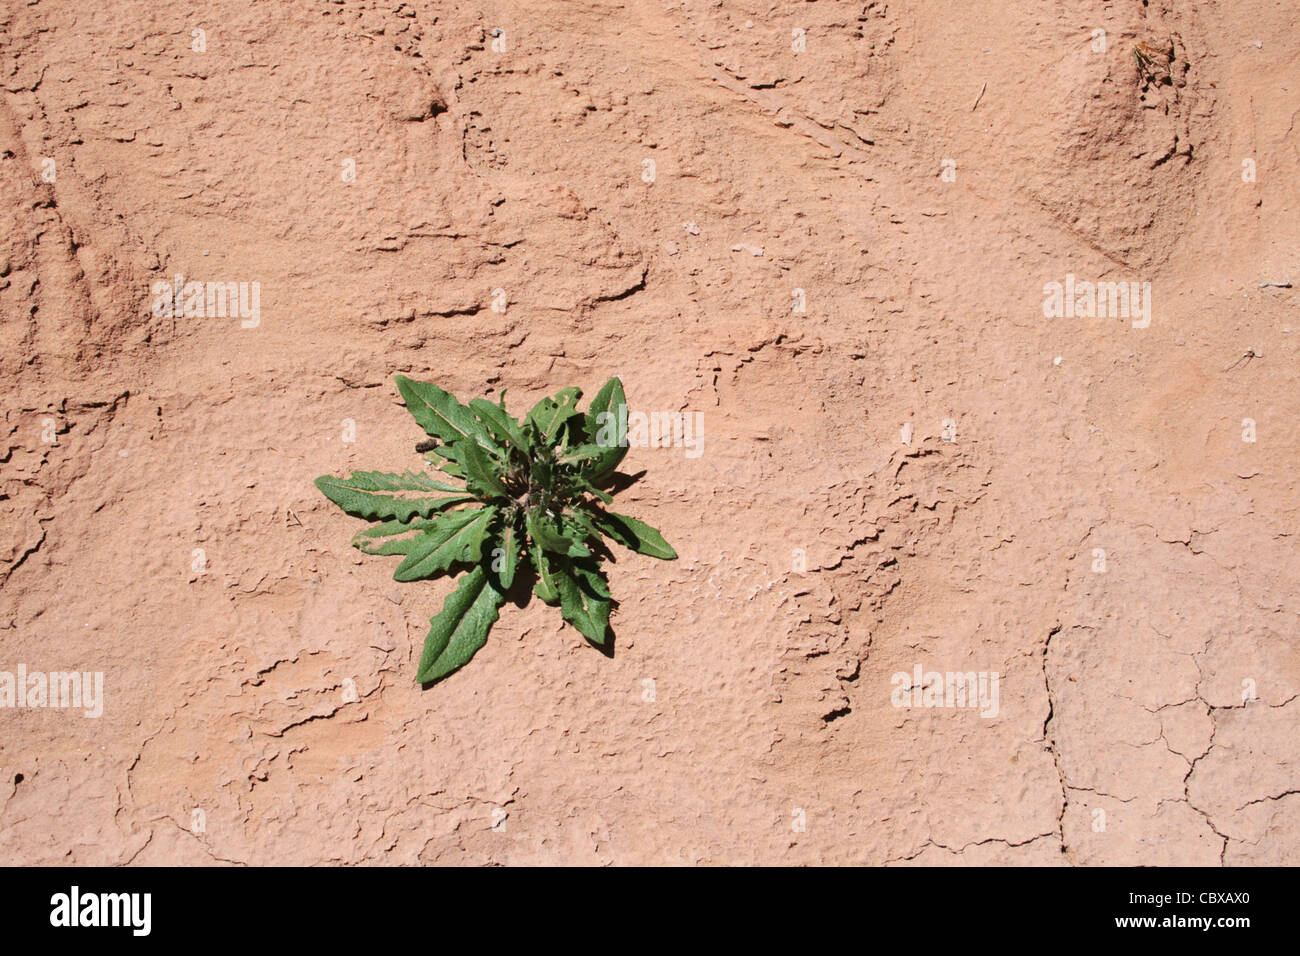 a single green plant growing on parched red soil - Stock Image